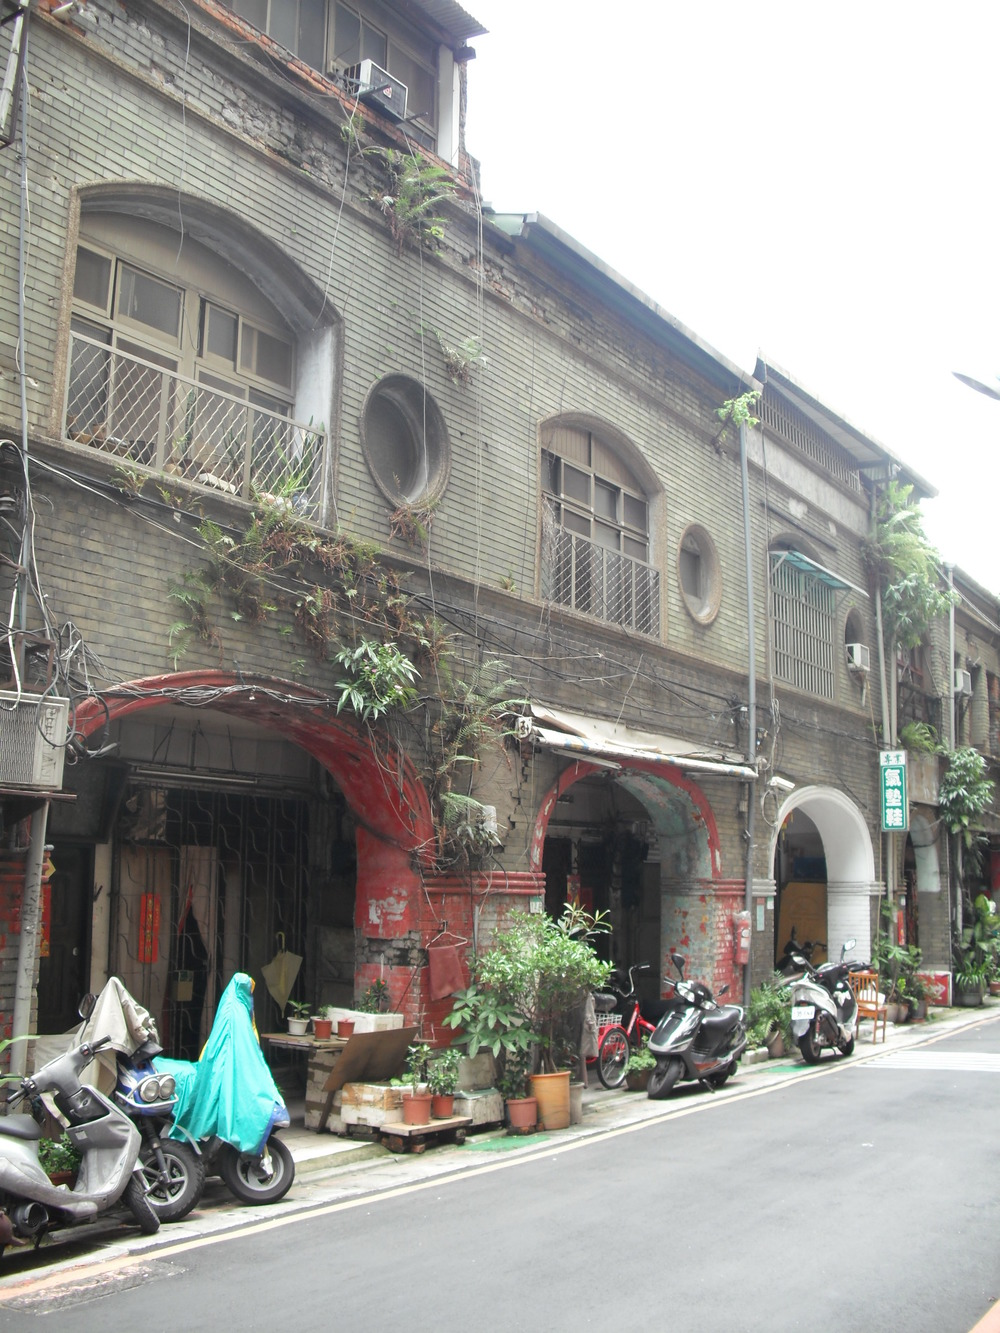 Old structures on Guisui Street